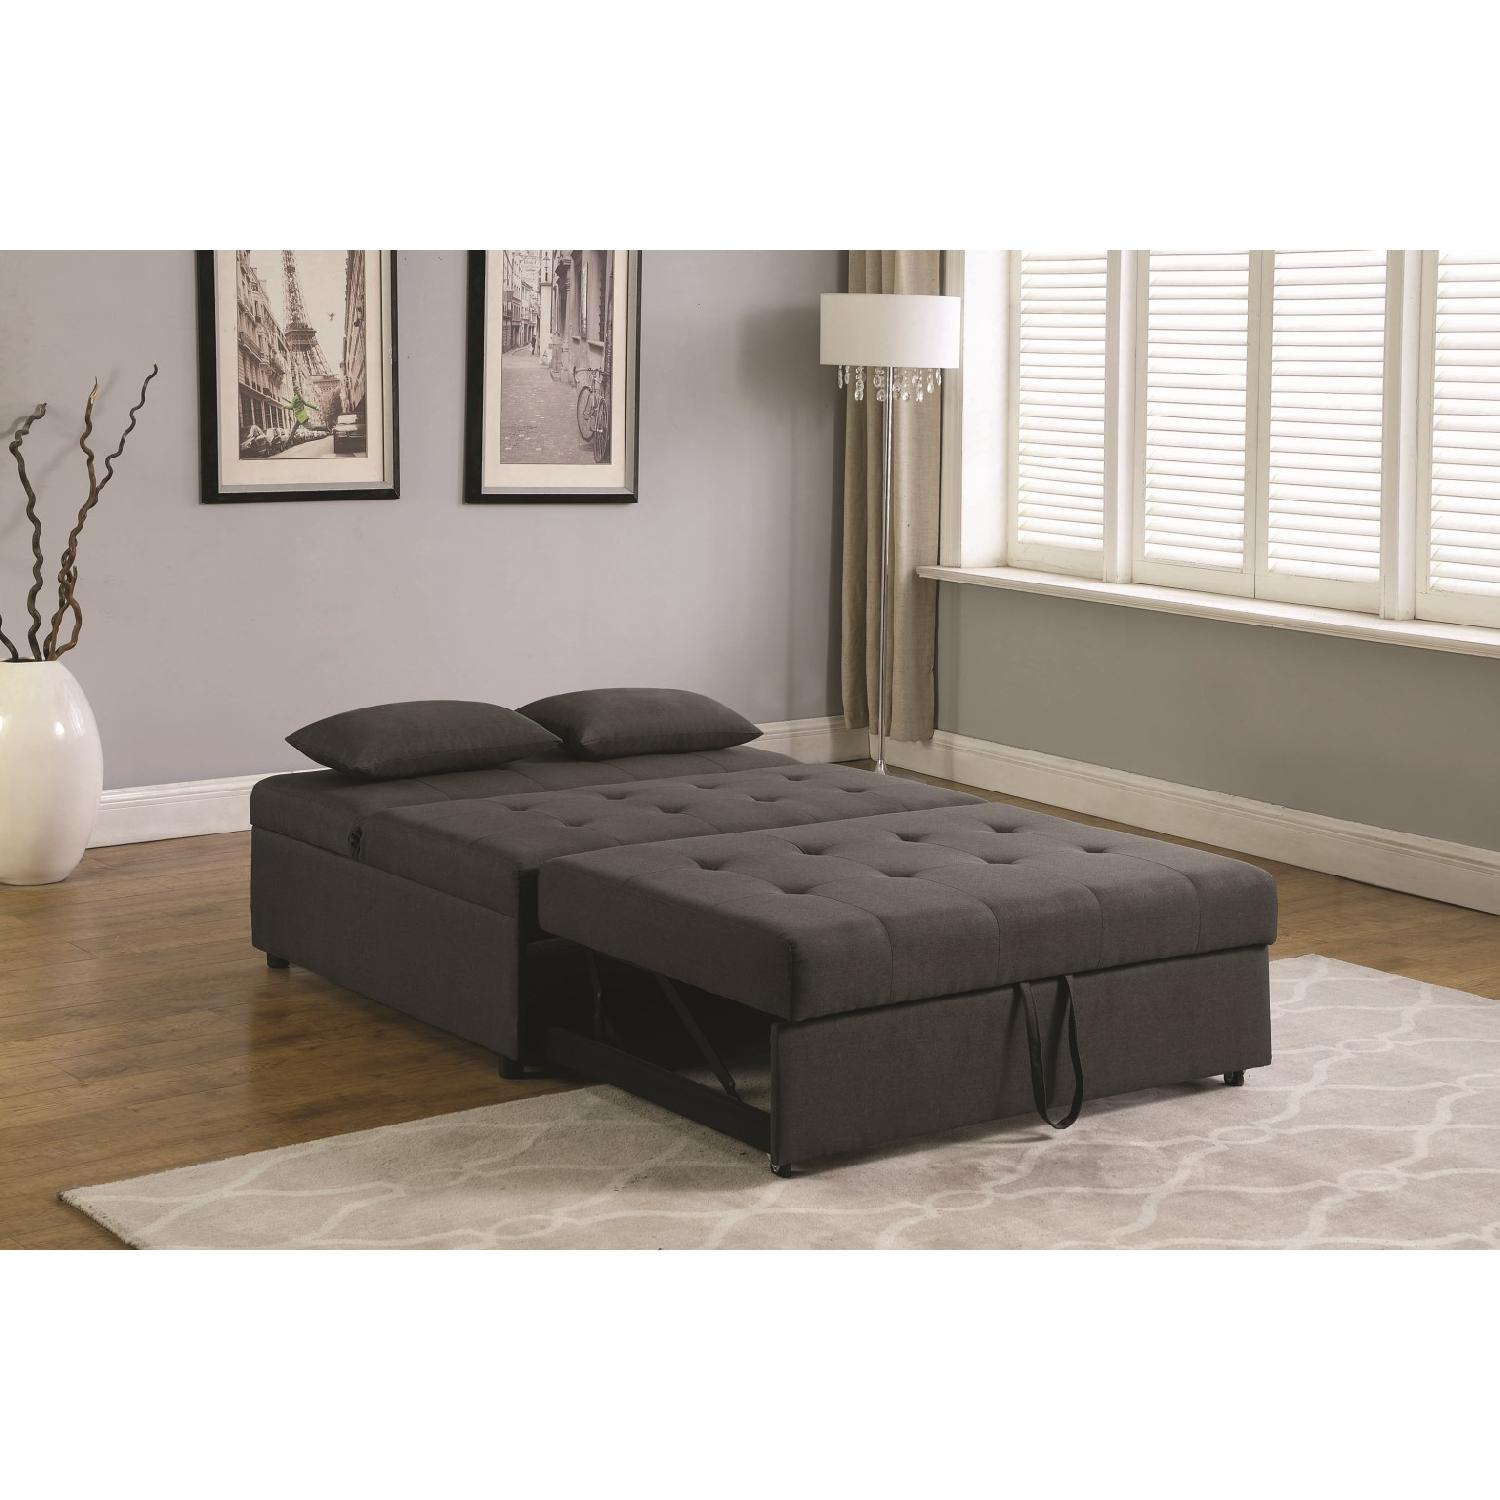 Sofabed in Grey Linen-Like Fabric w/ Pull-Out Sleeper - image-8